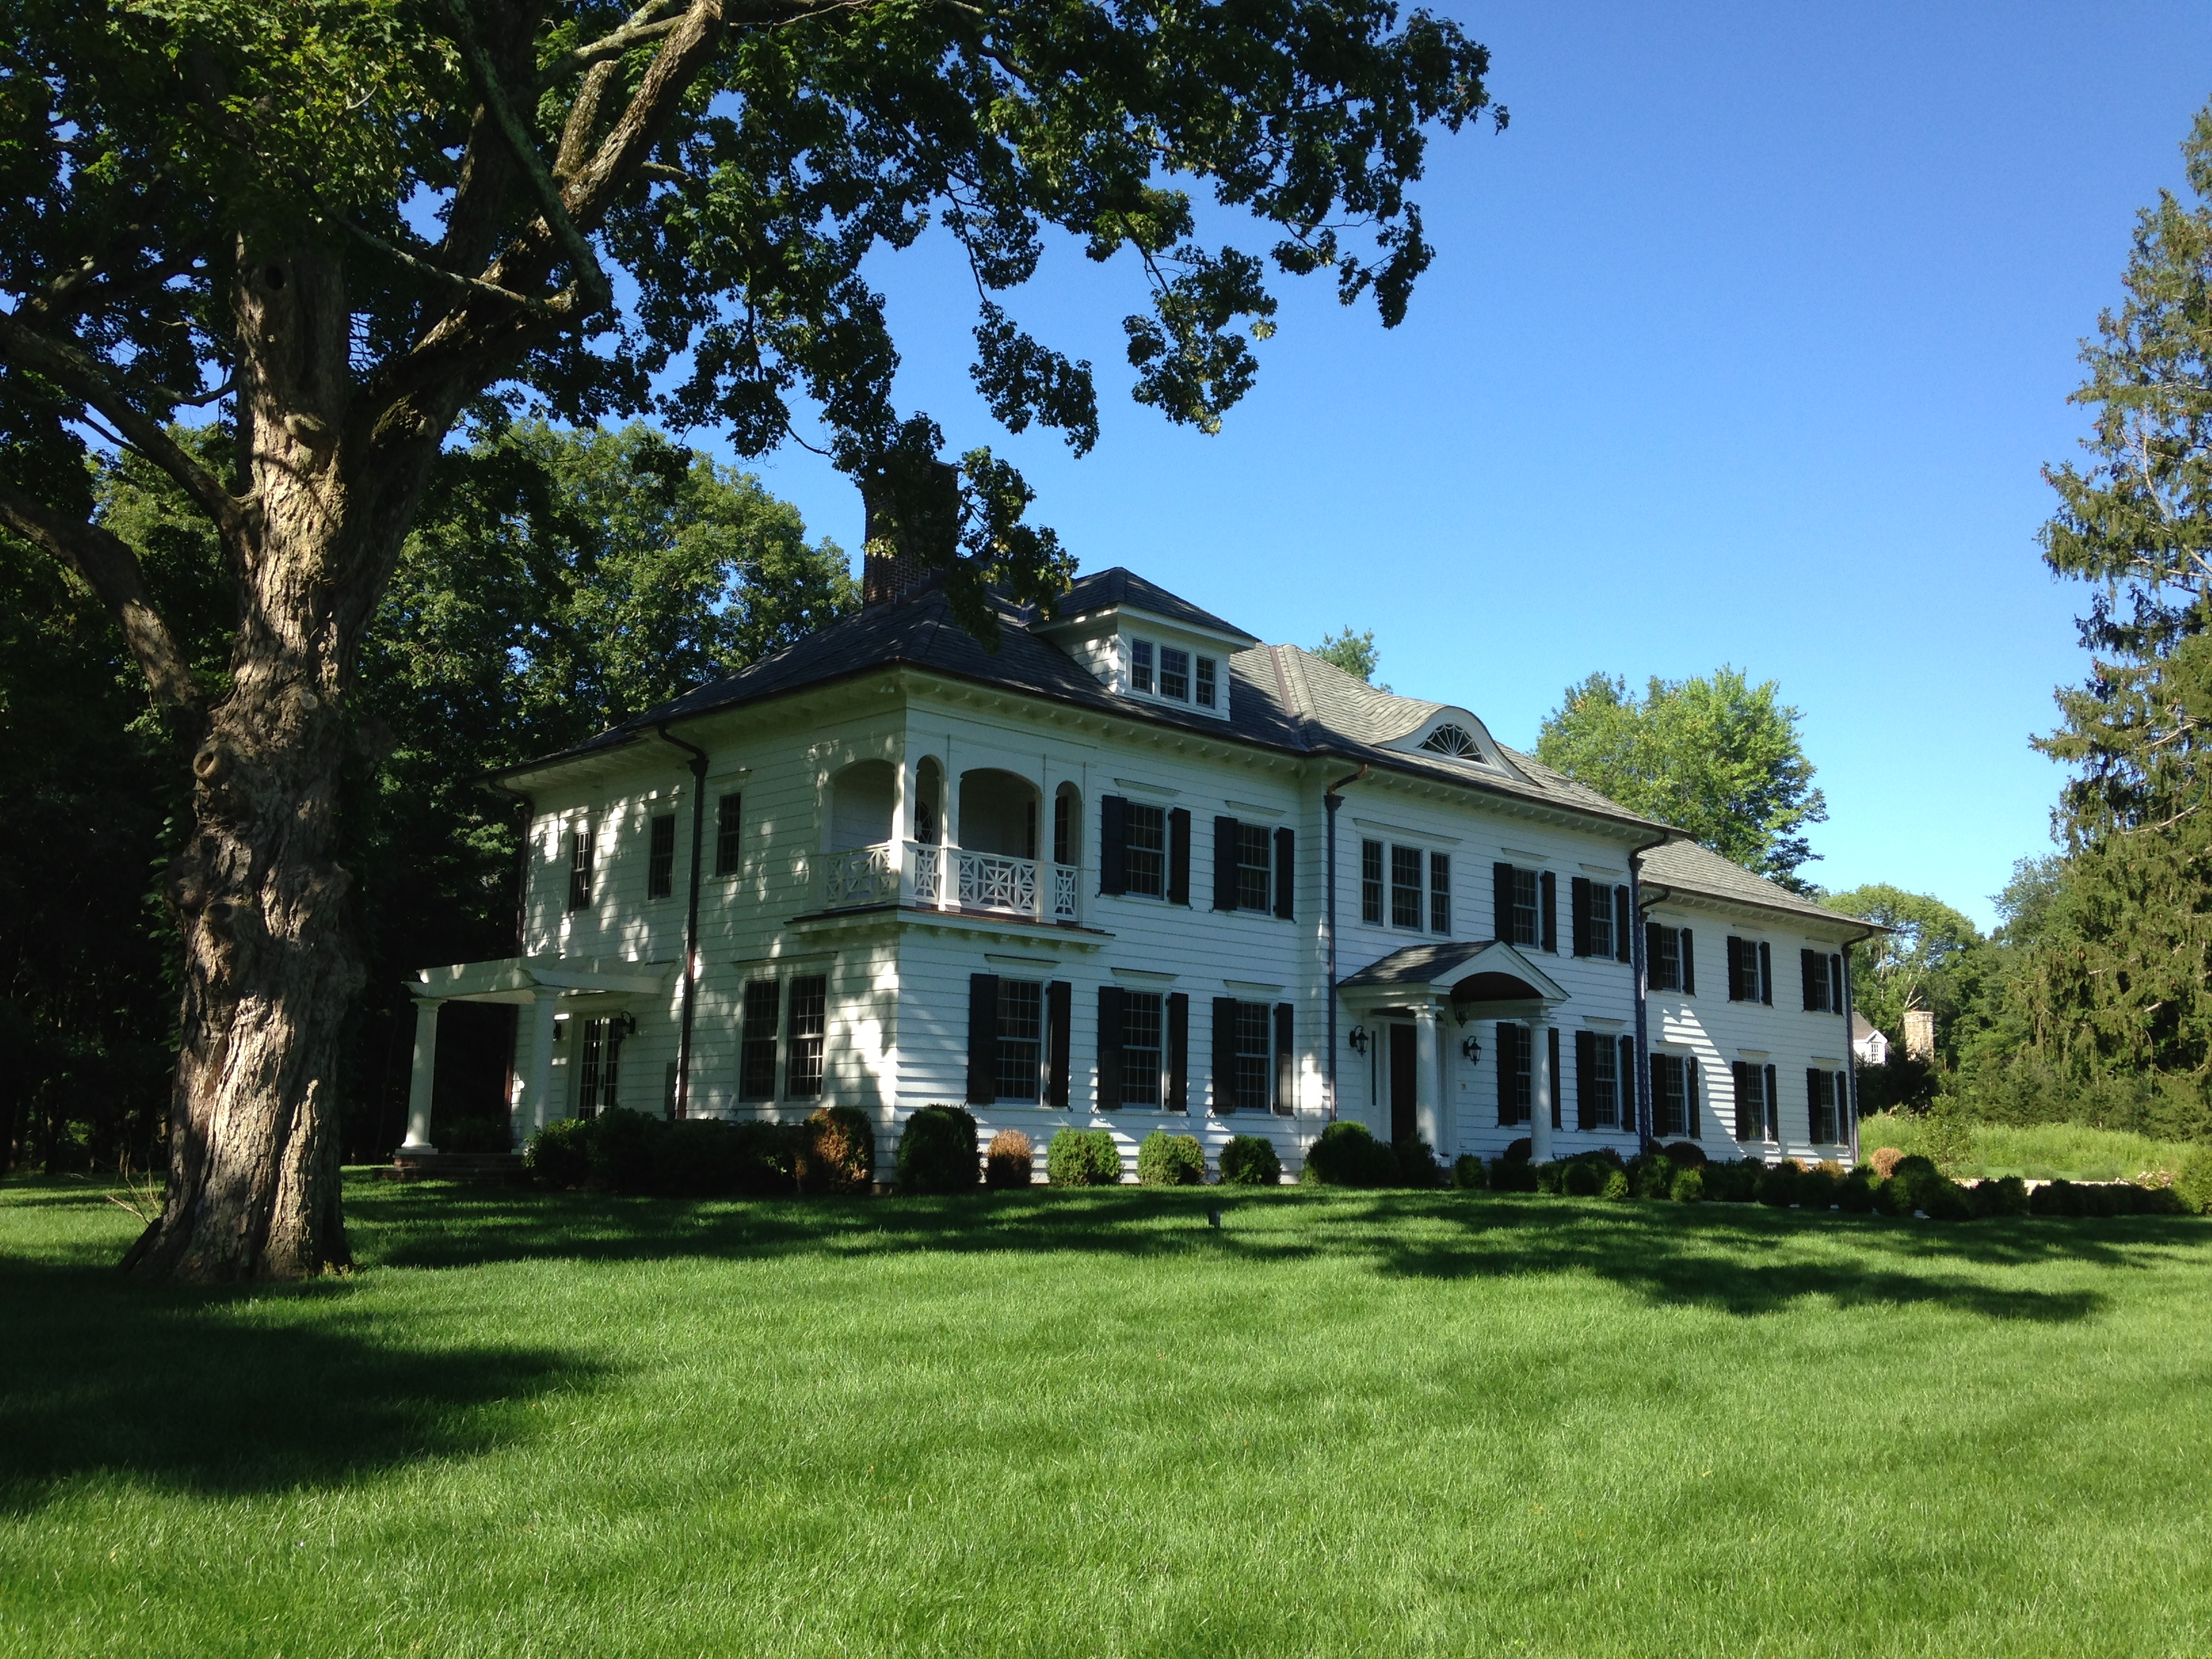 New Canaan Colonial Revival